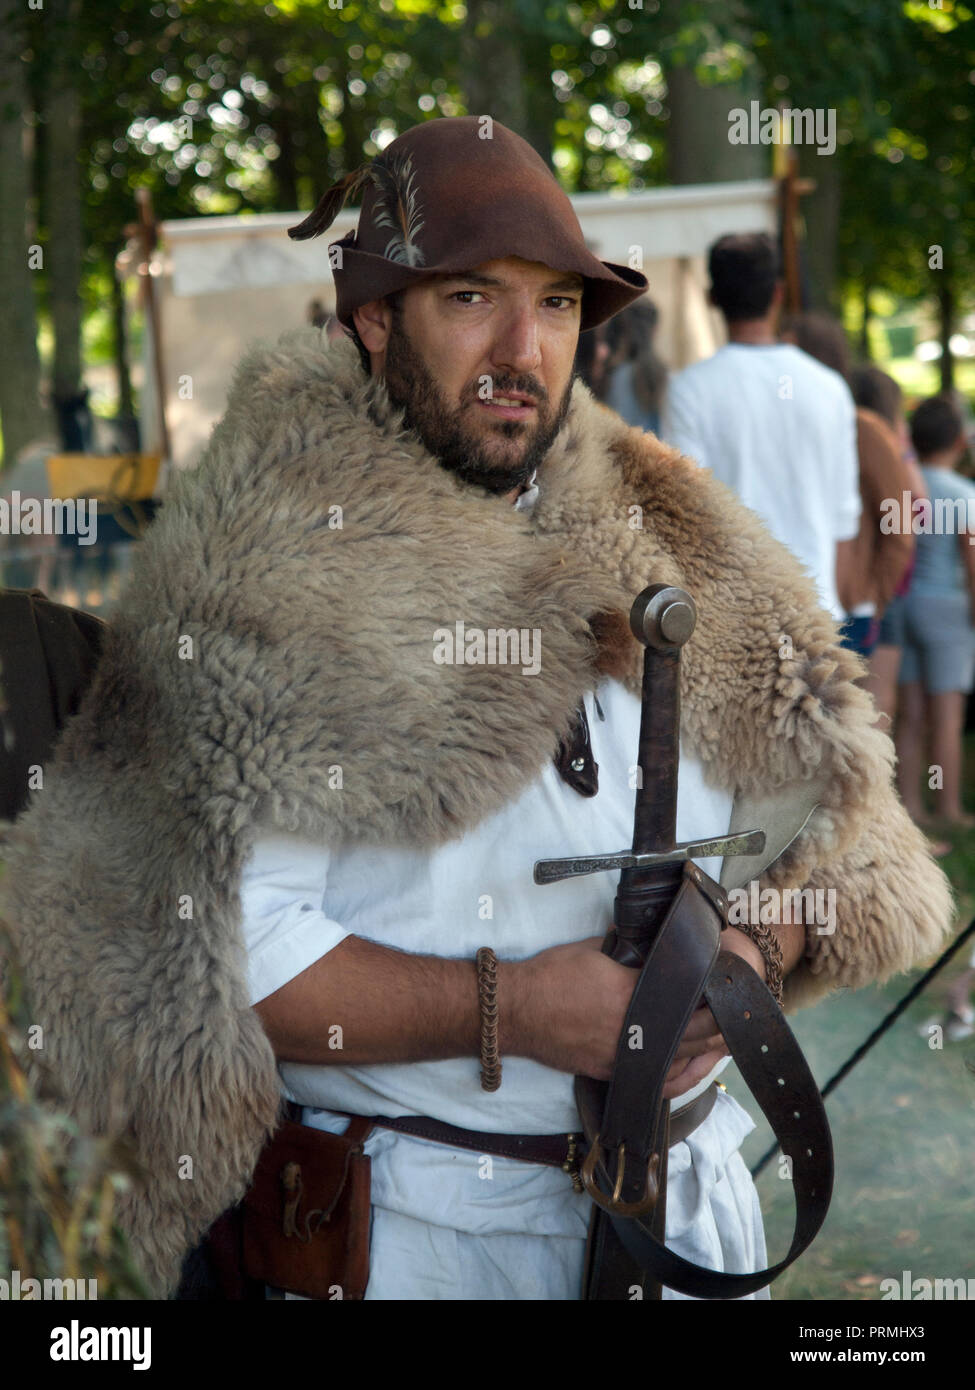 A medieval fair at the Chateau de Flamanville in Normandy - Stock Image